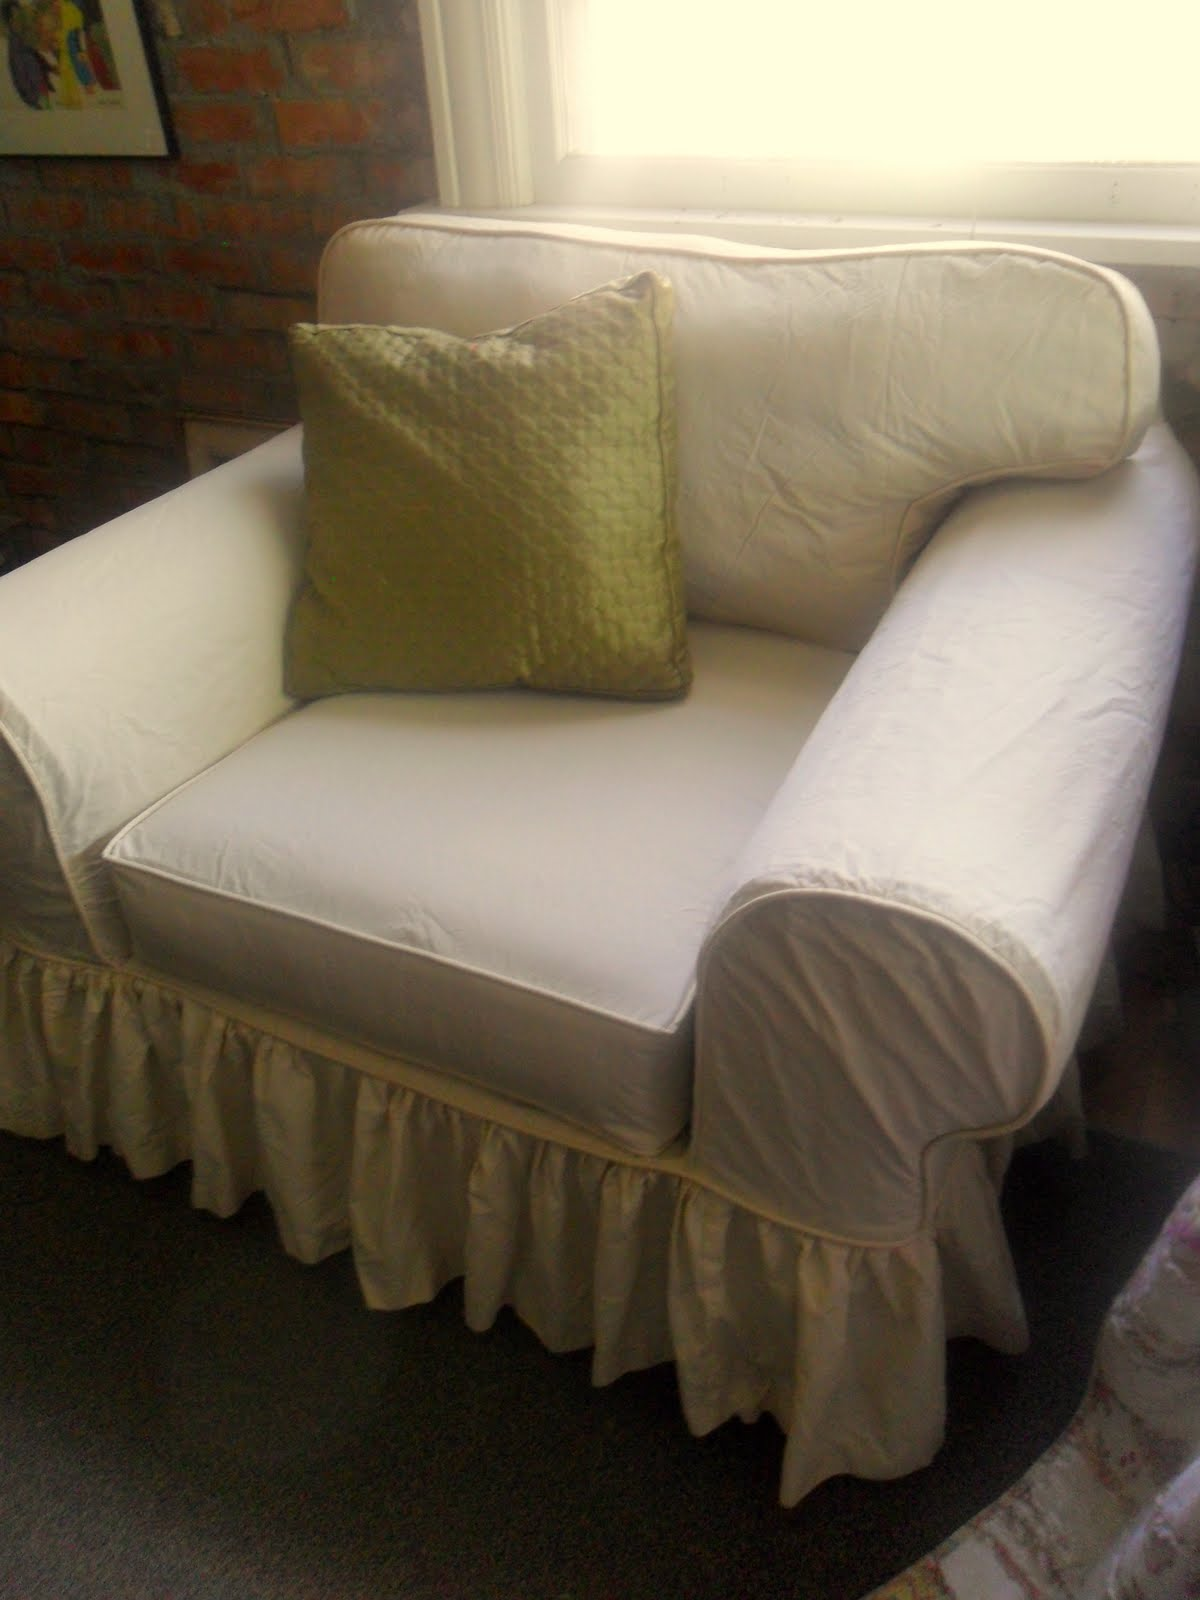 Oversized Chair Slipcover | Slipcover Oversized Chair | Walmart Couch Covers